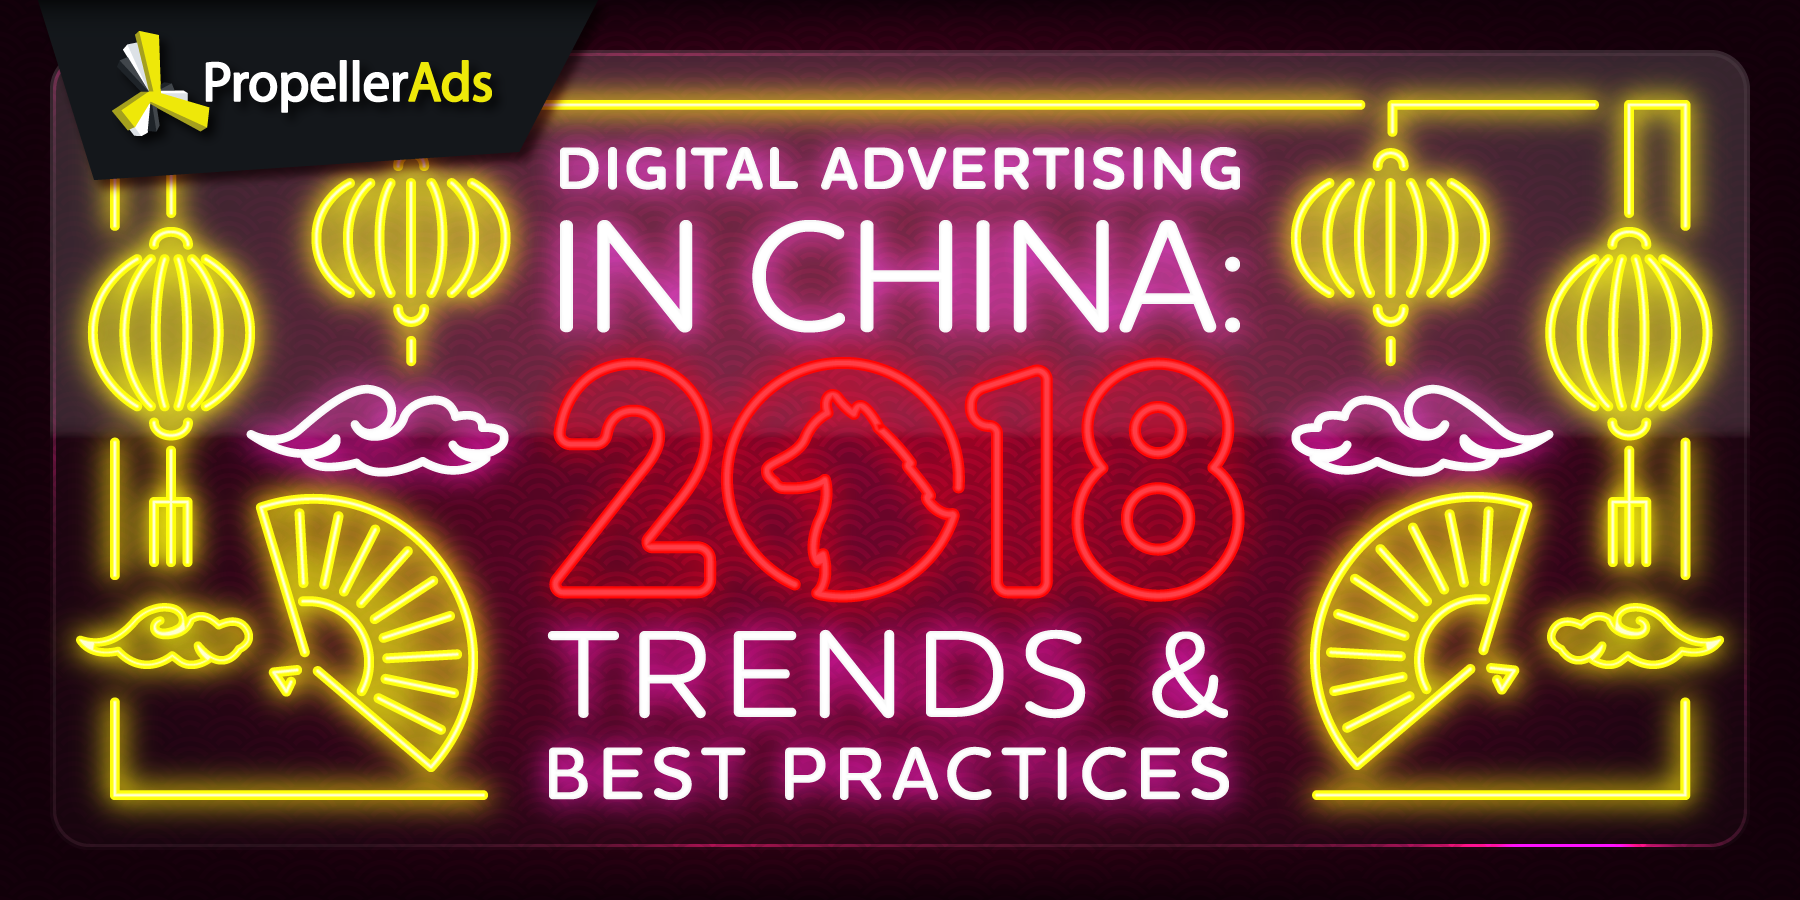 Digital advertising trends in China